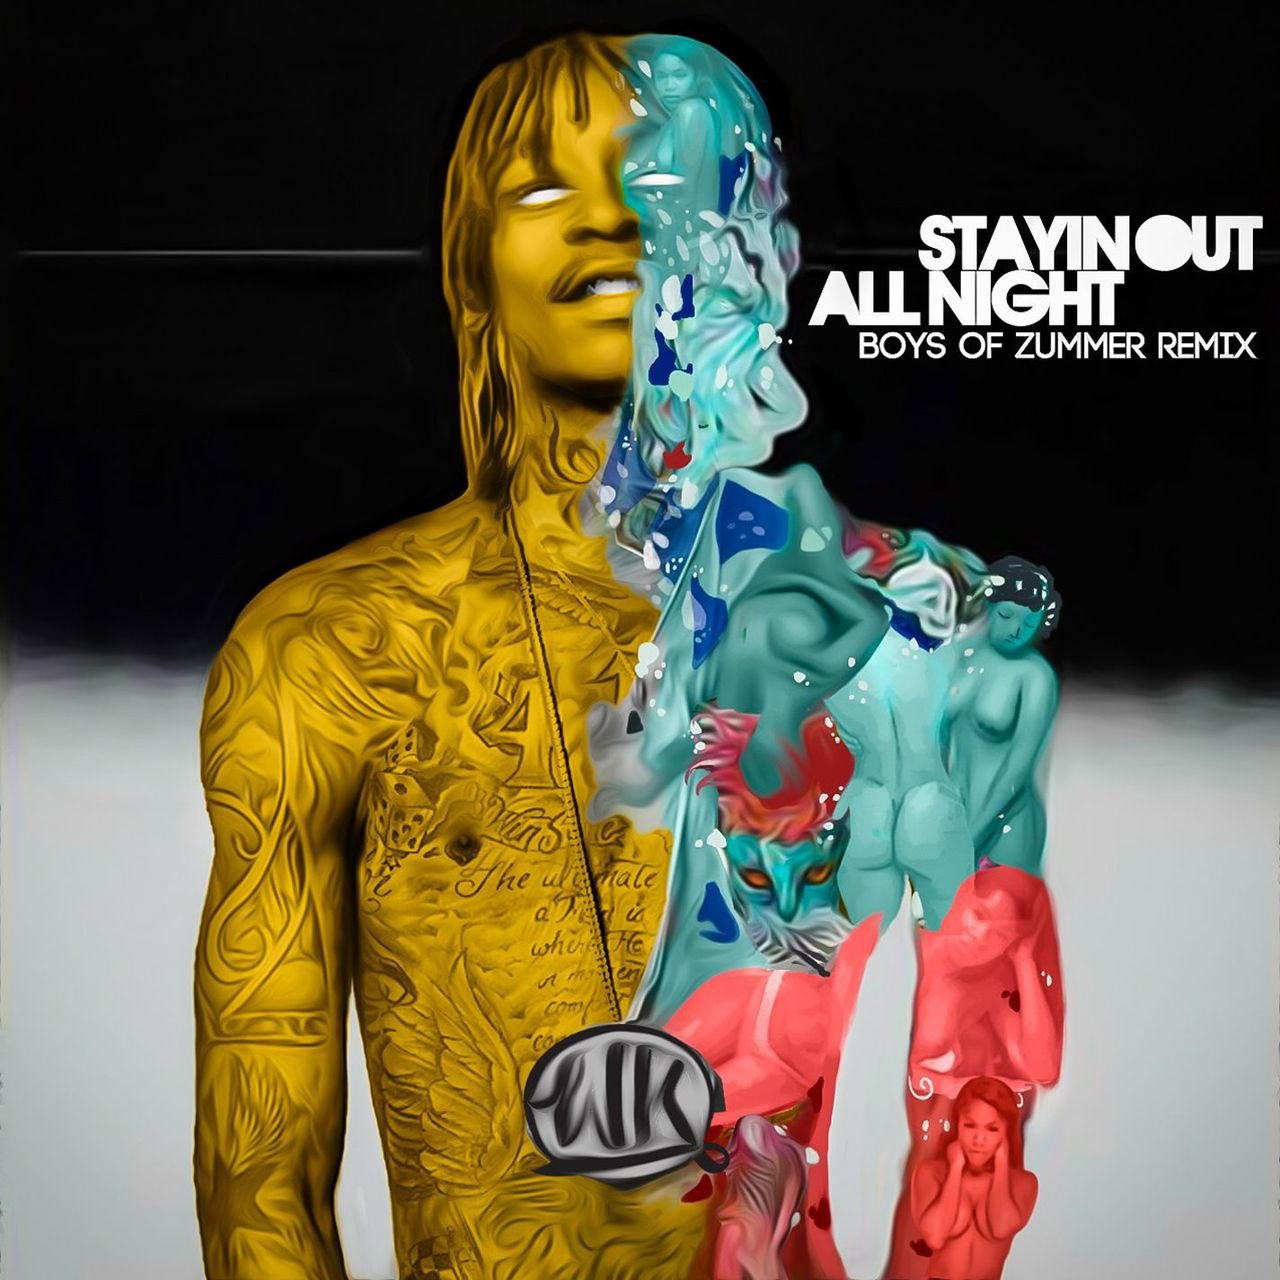 Stayin Out All Night (Boys Of Zummer Remix)